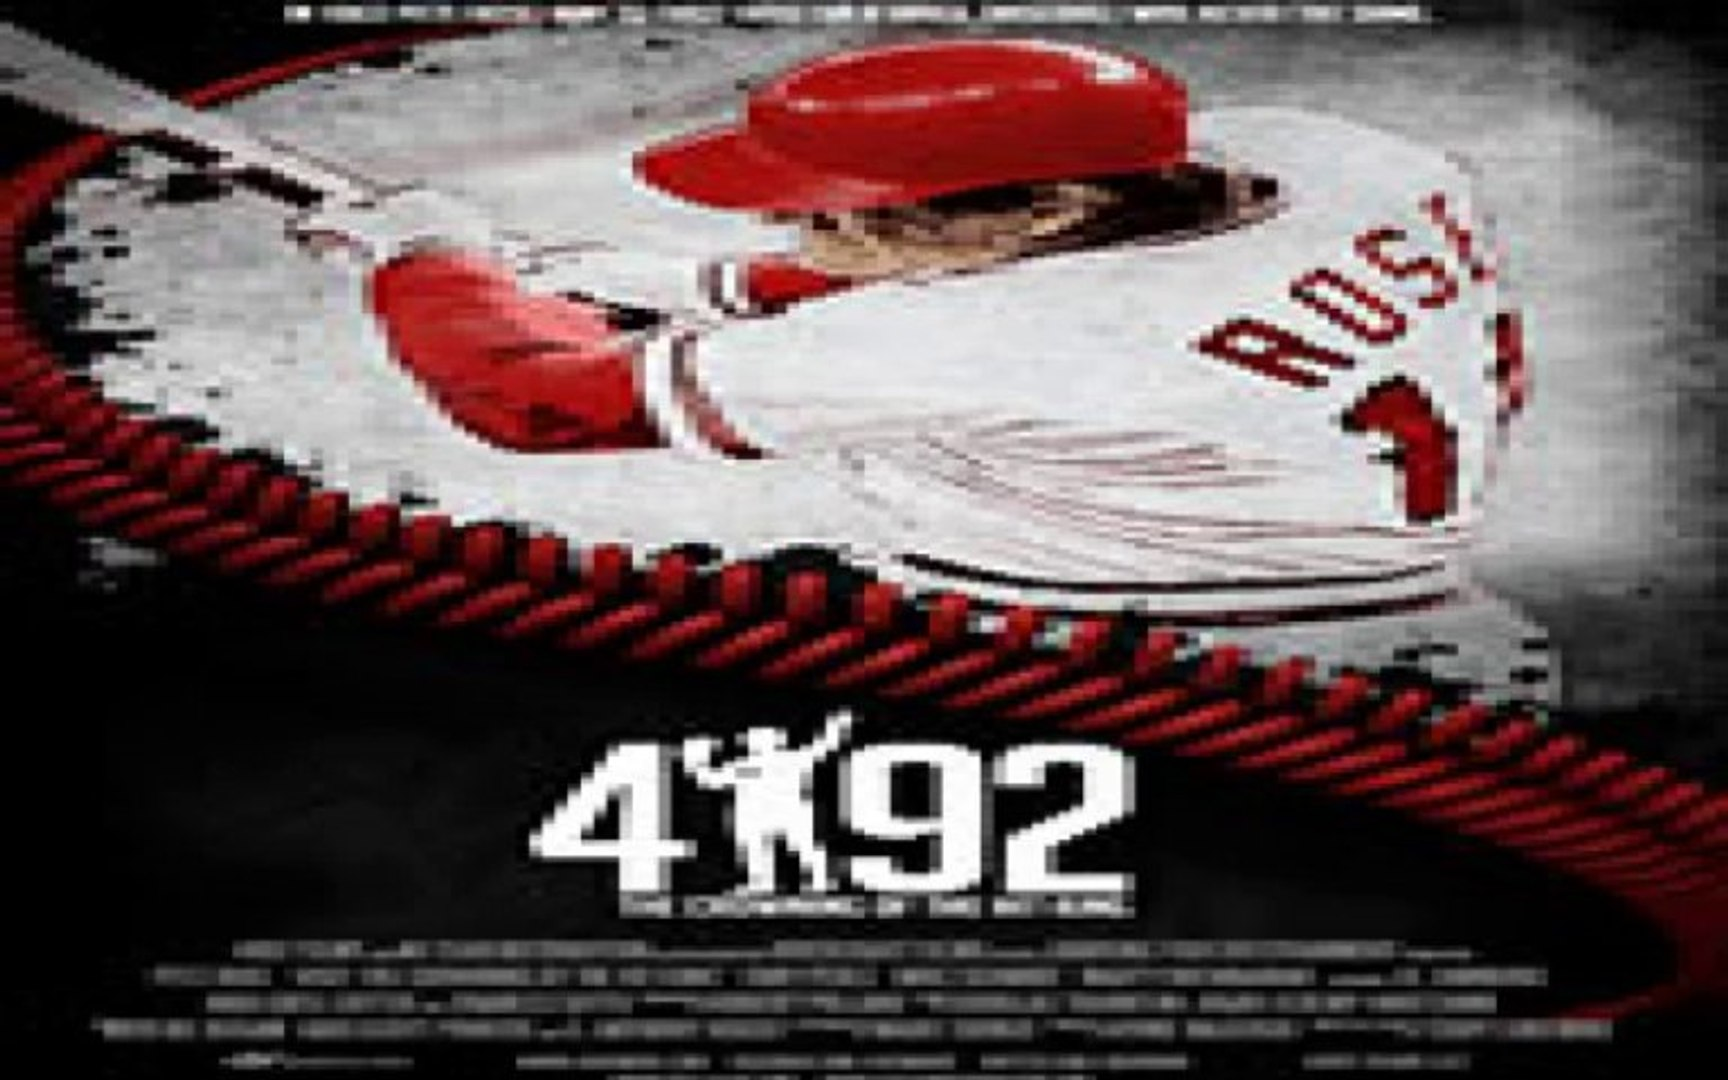 Watch 4192: The Crowning of the Hit King Online Free